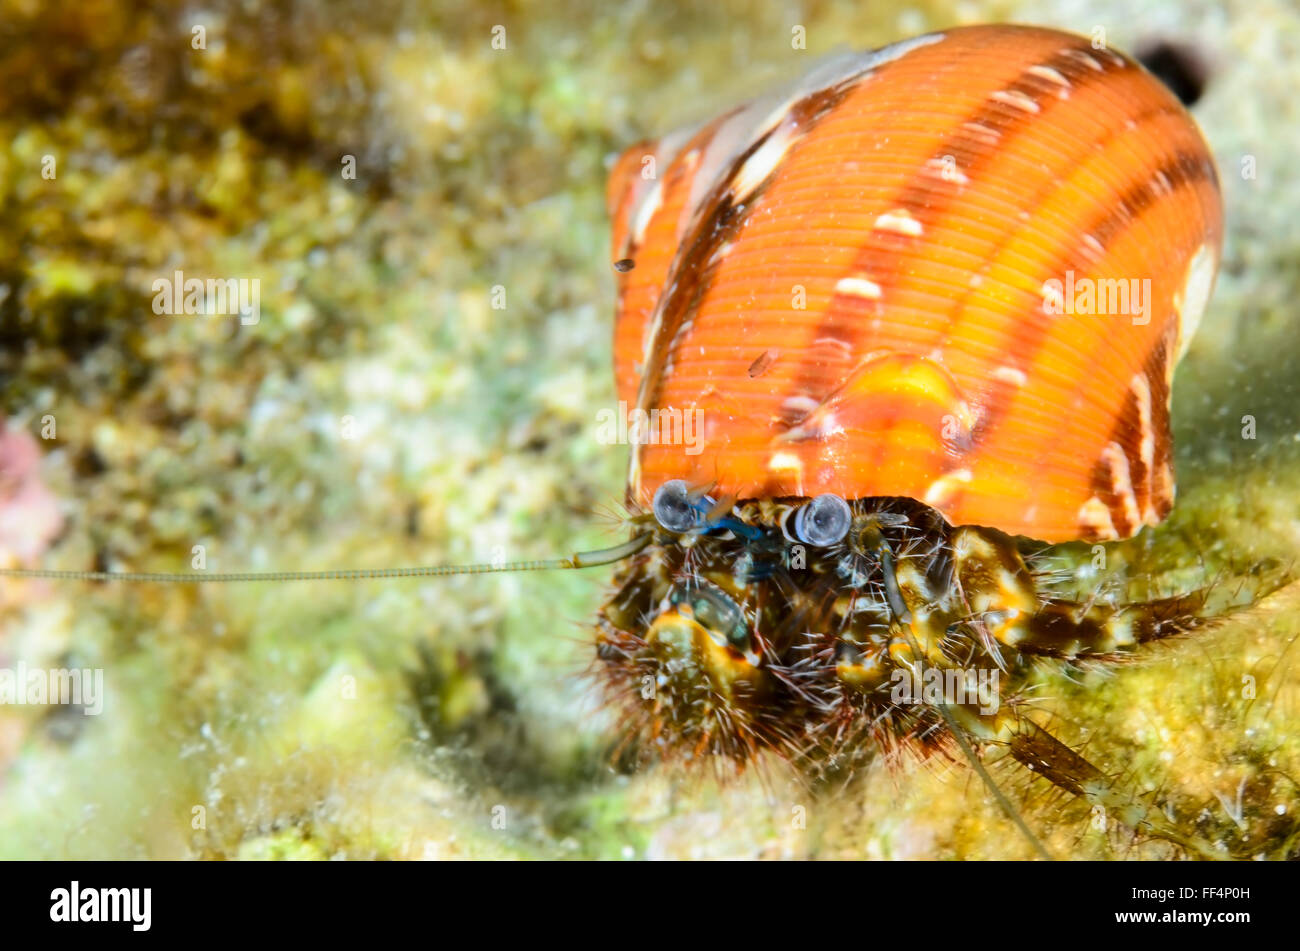 Hairy hermit crab, Pagurus hirtimanus, Moalboal, Tuble, Cebu, Philippines - Stock Image